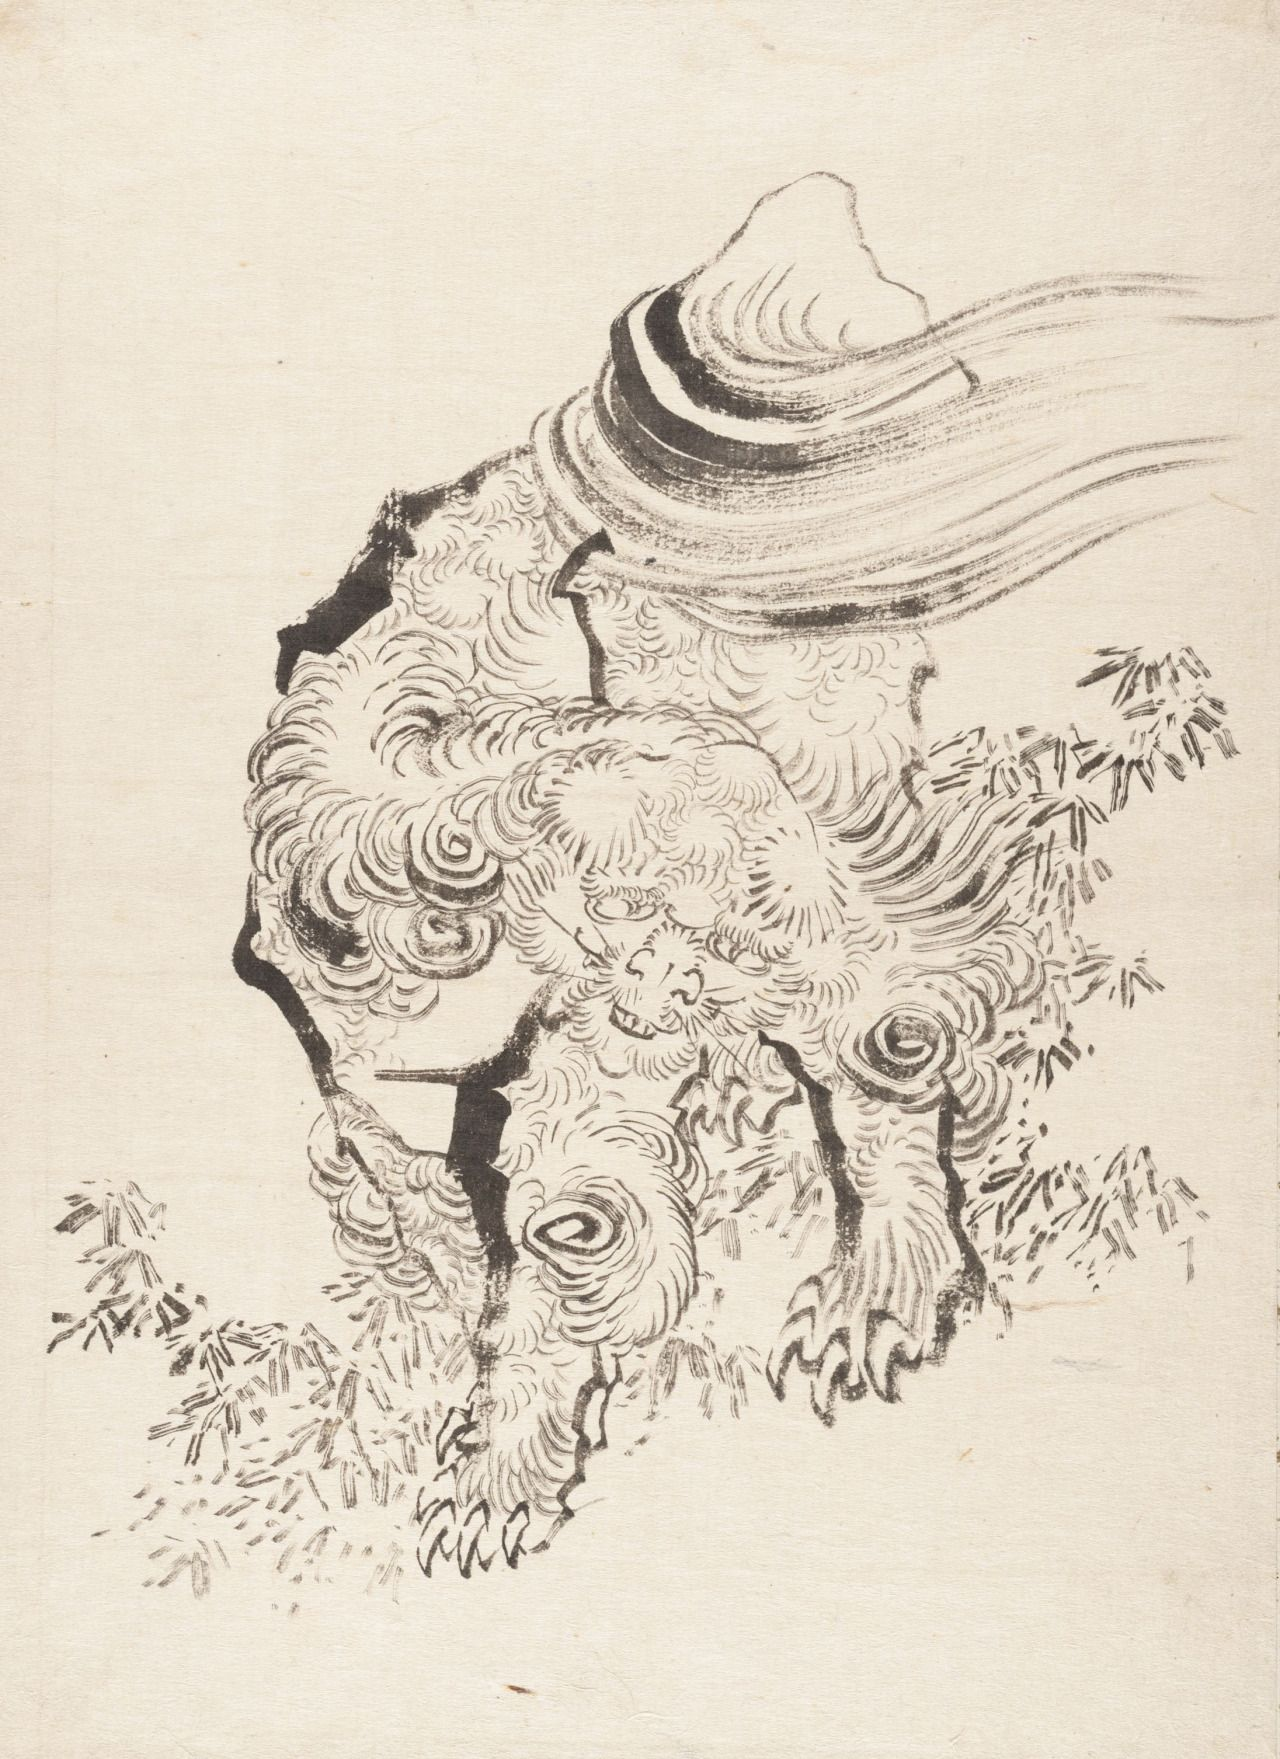 Chinese Lion Foo Dog Prints Chines Lions Are My Favorite Motifs In Japanese Tattoos The Color Print Is By Kuniyoshi And Rest Hokusai